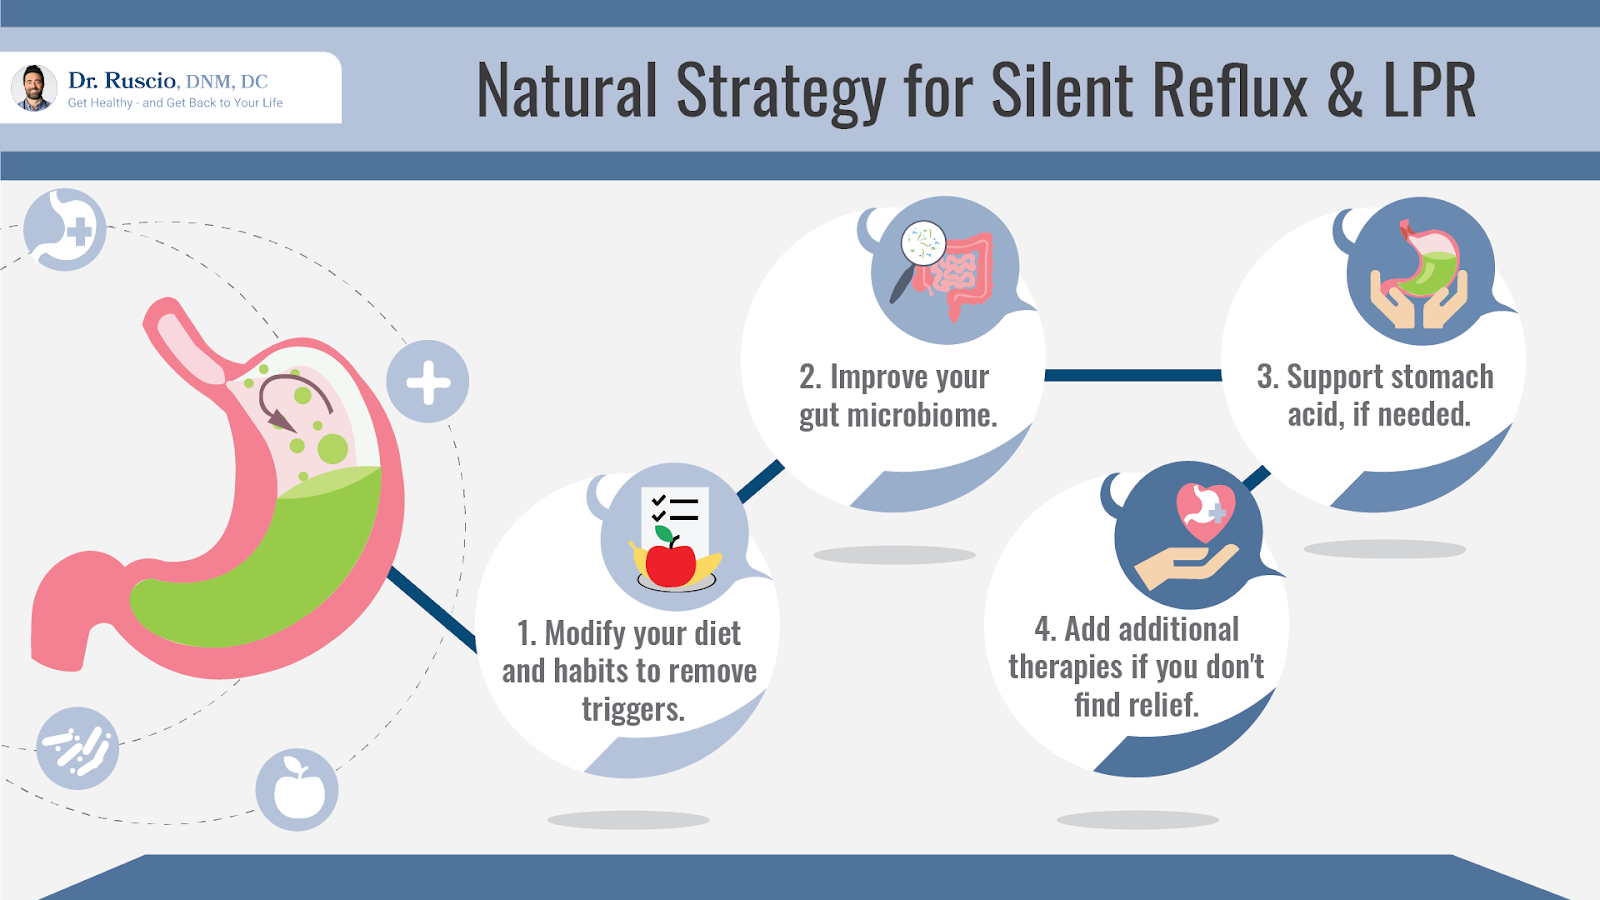 Infograph showing the natural strategy for silent reflux and laryngopharyngeal reflux